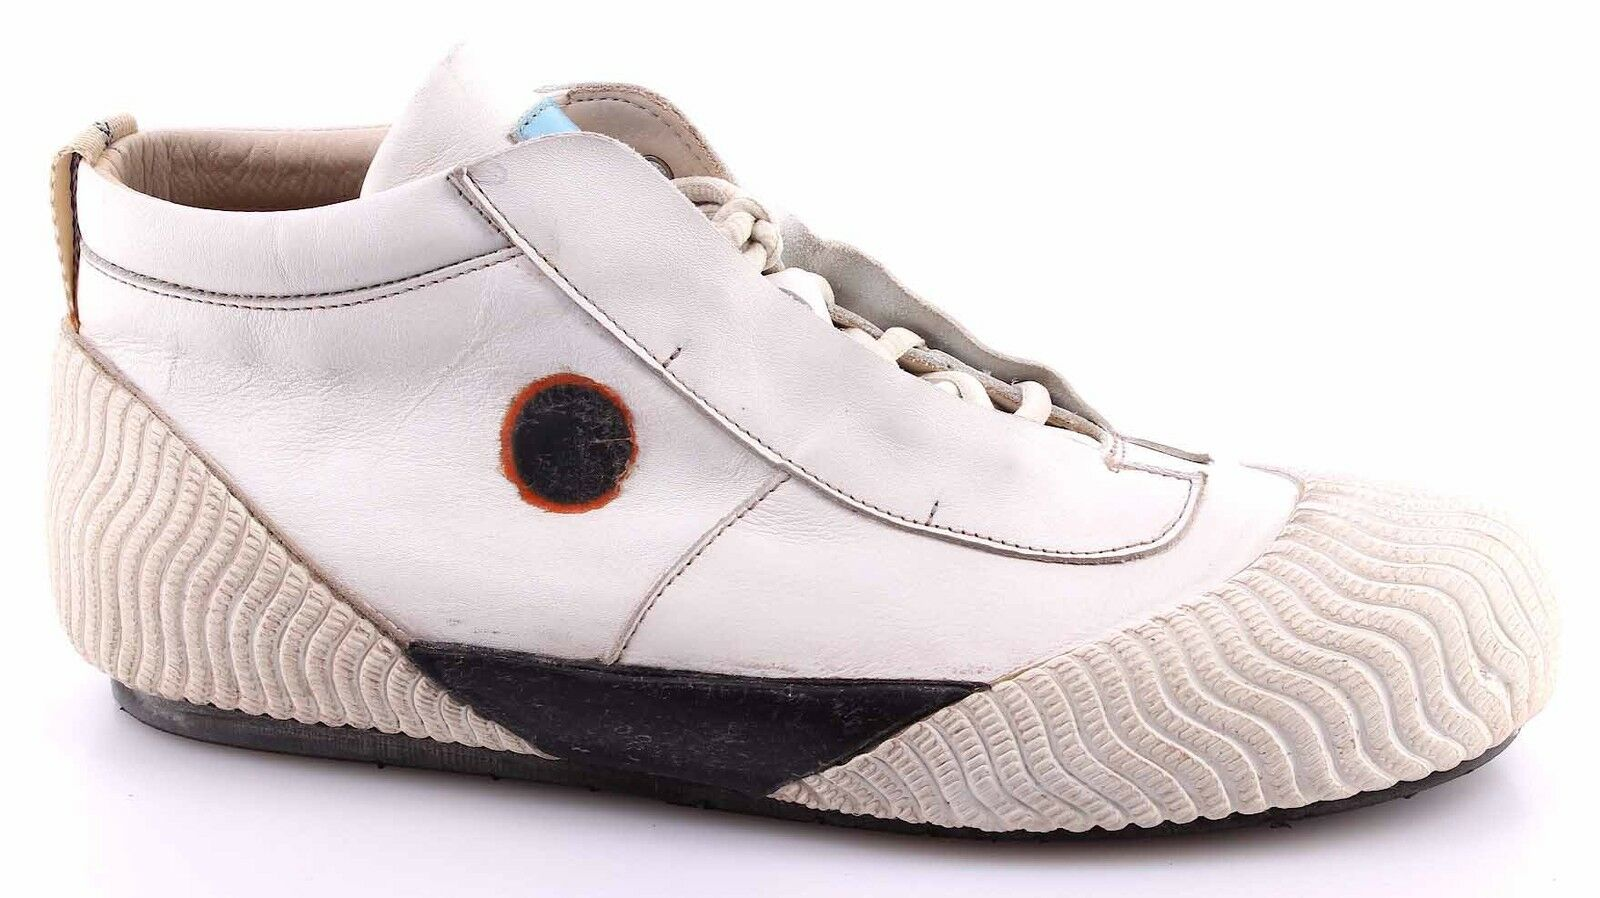 a629bede542d Men s Sneakers Shoes MOMA MOMA MOMA 13501-6 Softy White Leather White  Vintage Made Italy ee37ca